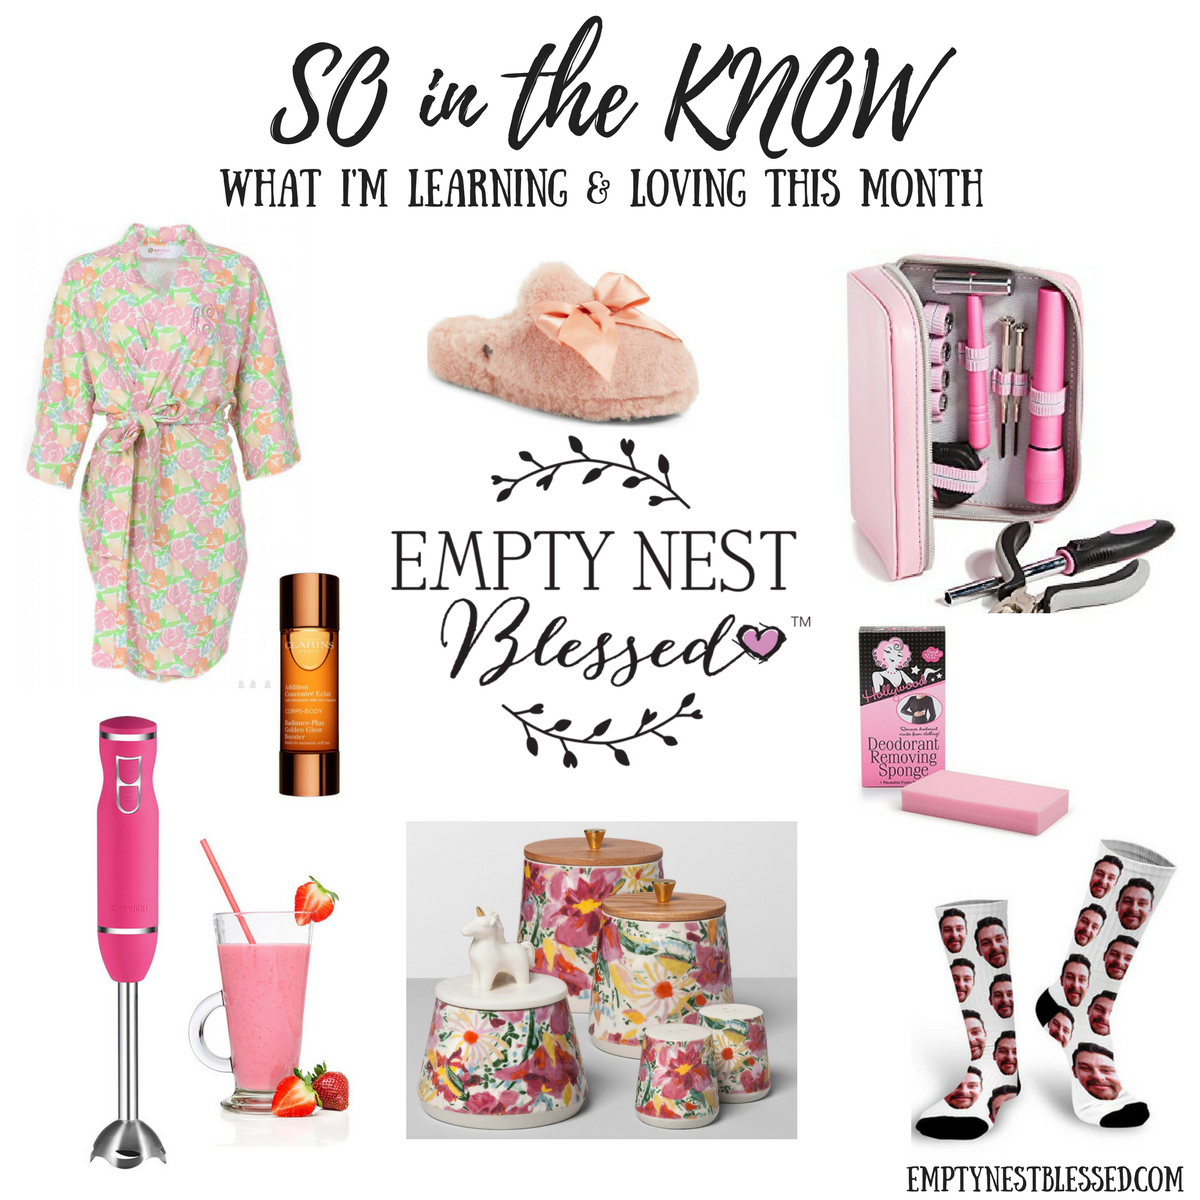 SO in the KNOW – What I'm Learning & Loving in April